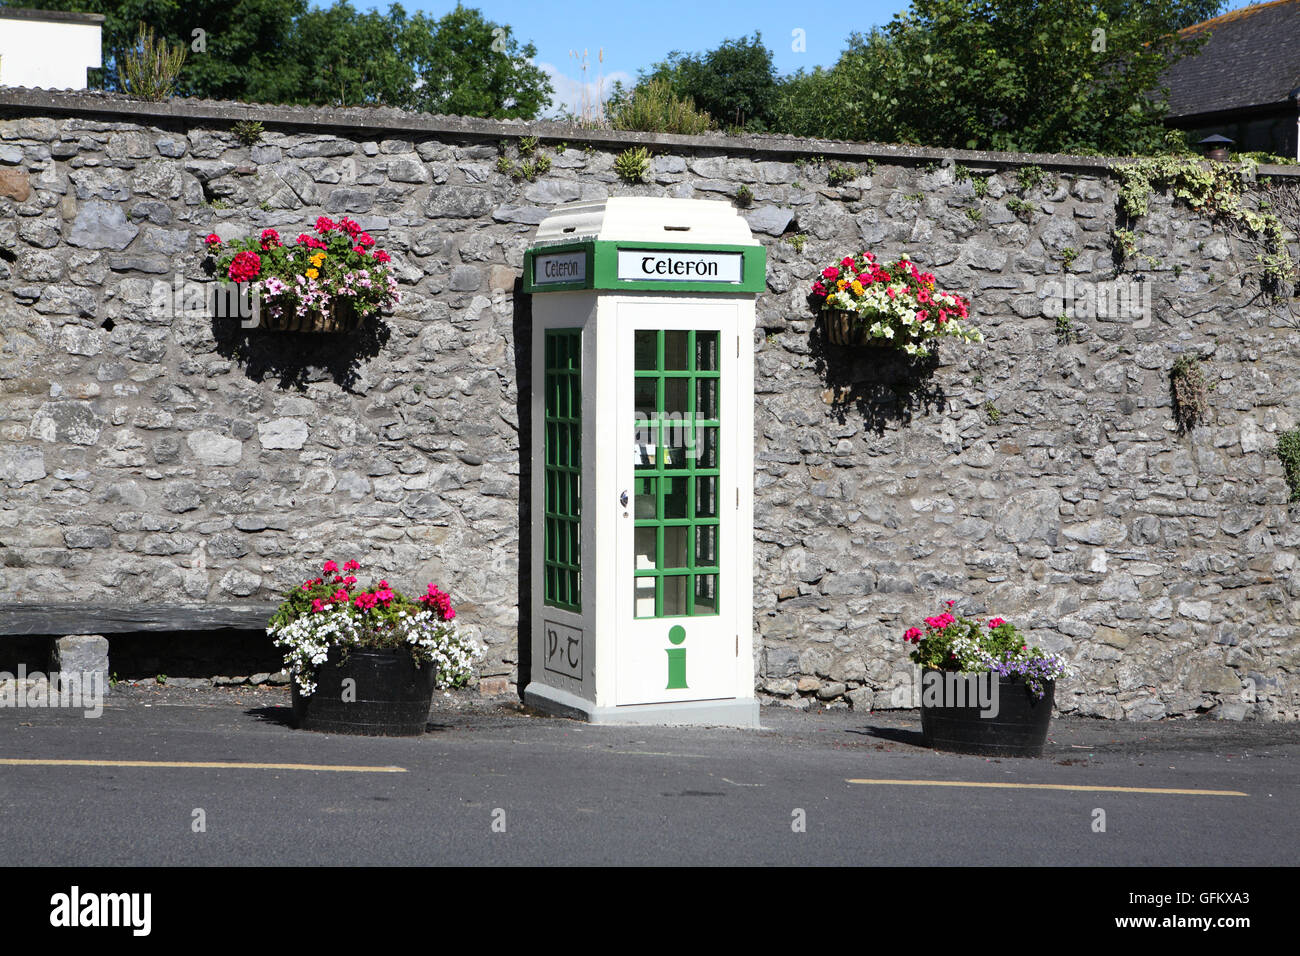 Telefon box telephone box Irish - Stock Image